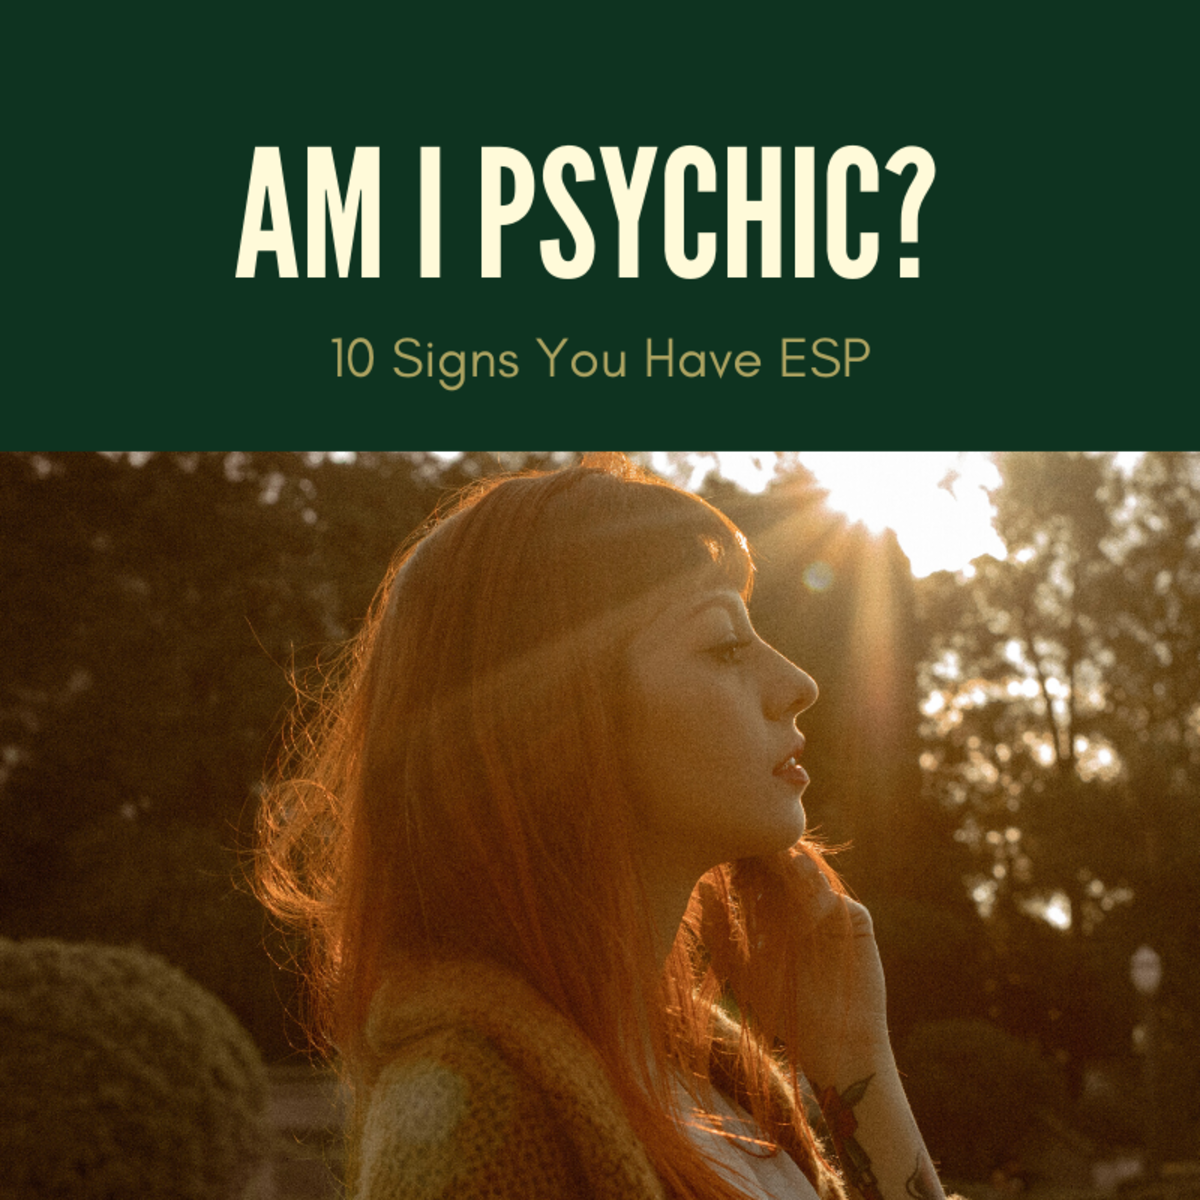 If you've felt like you were always a little different from everyone else, you might be one of the special few who have ESP. Read on to find out more!